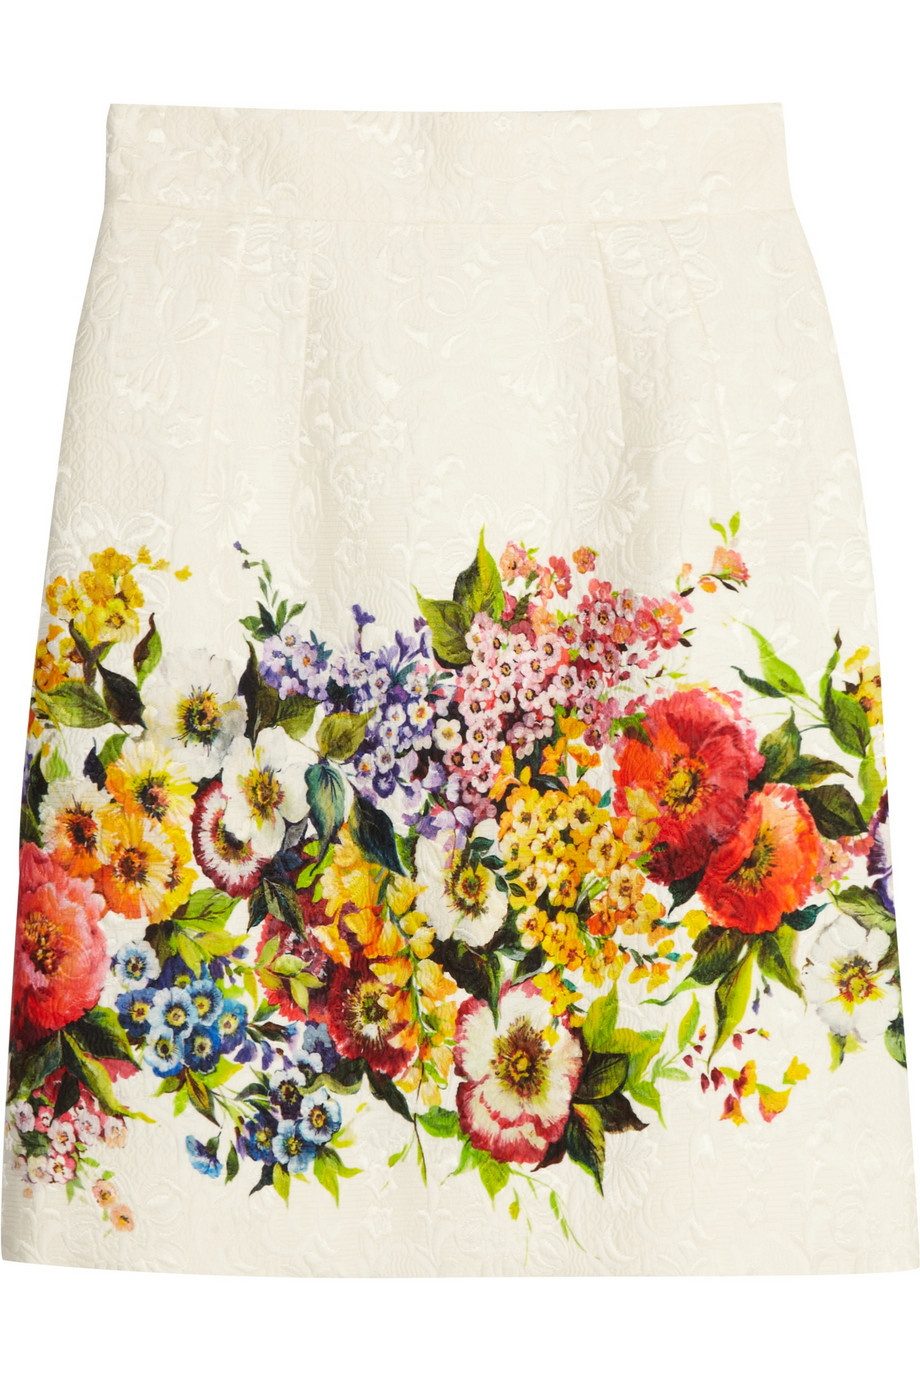 0483c1e0 Dolce & Gabbana Floral-brocade skirt – 50% at THE OUTNET.COM